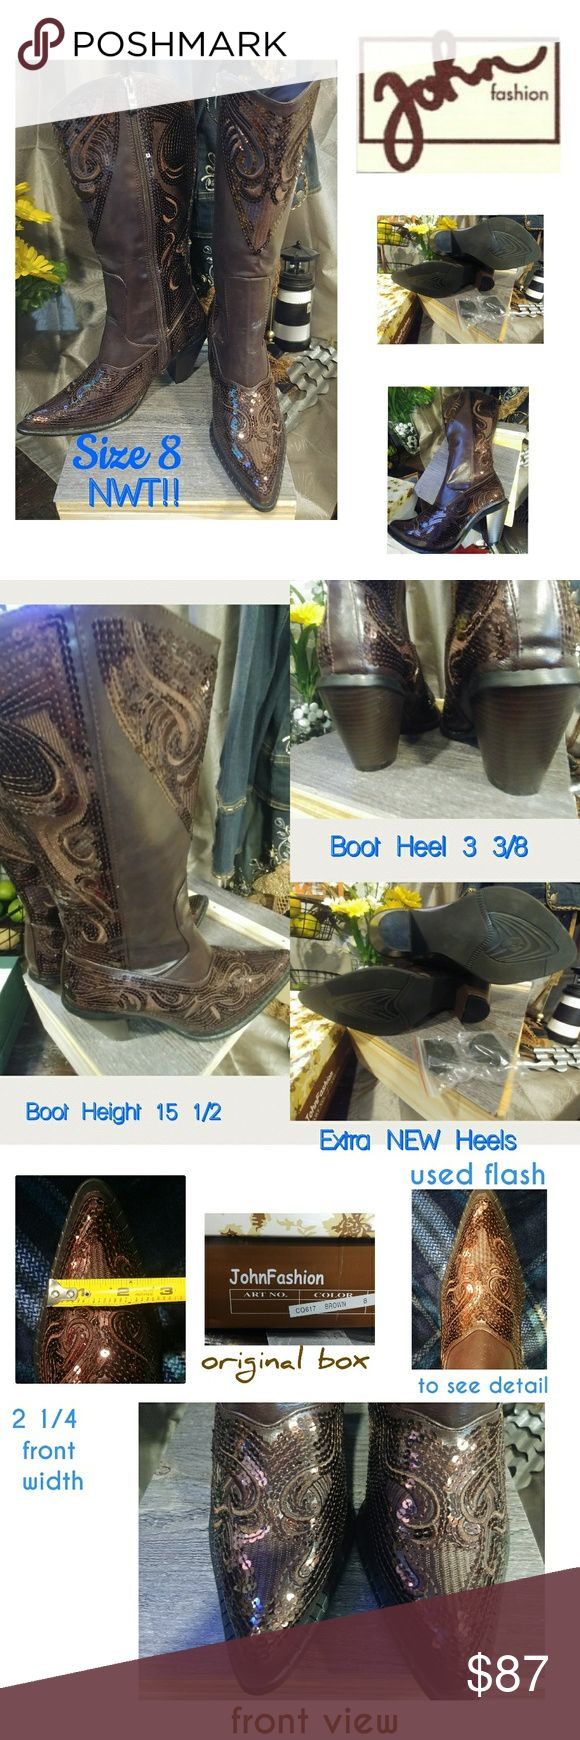 👢 🆕WT!! JohnFashion Mid-Calf Boots Embroidered Sequence  Ladies Cowgirl Chic Boots Size 8 Zipper length 13 3/8 Height 15 1/2in Front width 2 1/4 Heel 3 3/8 in  NEW With Tags, Never been used Keep in excellent condition in original box. Front view of boots i took.a.flashed picture to get a detailed of the sequence, the boot looks light brown but in deed they are dark brown.  Paid 150.00 No low balling and no trades. Thanks JOHNFASHION Shoes Heeled Boots